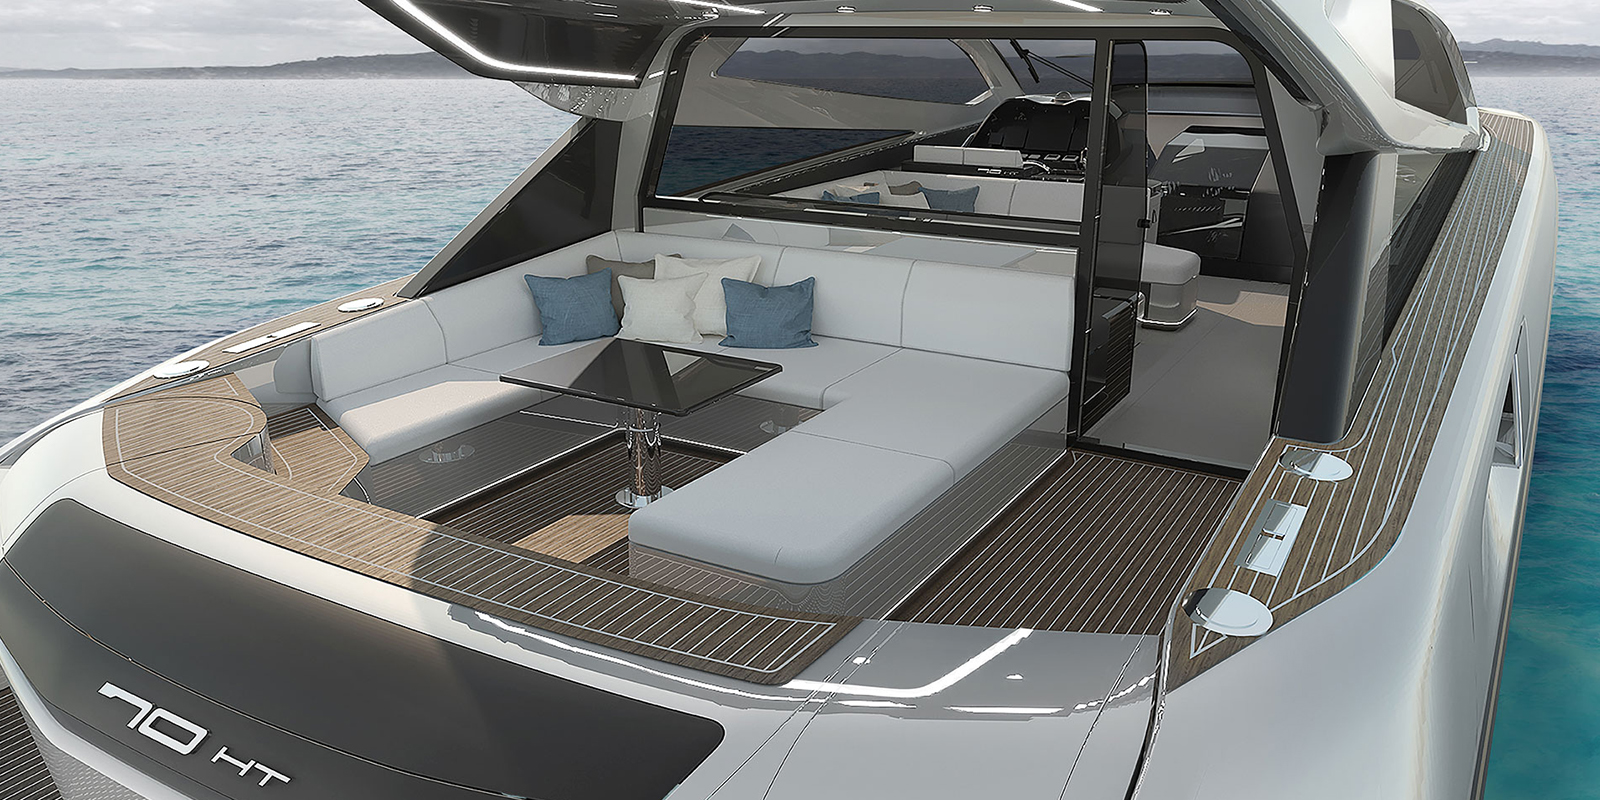 OTAM 70 HT - The new yacht takes shape, inspired by luxury cars and jets